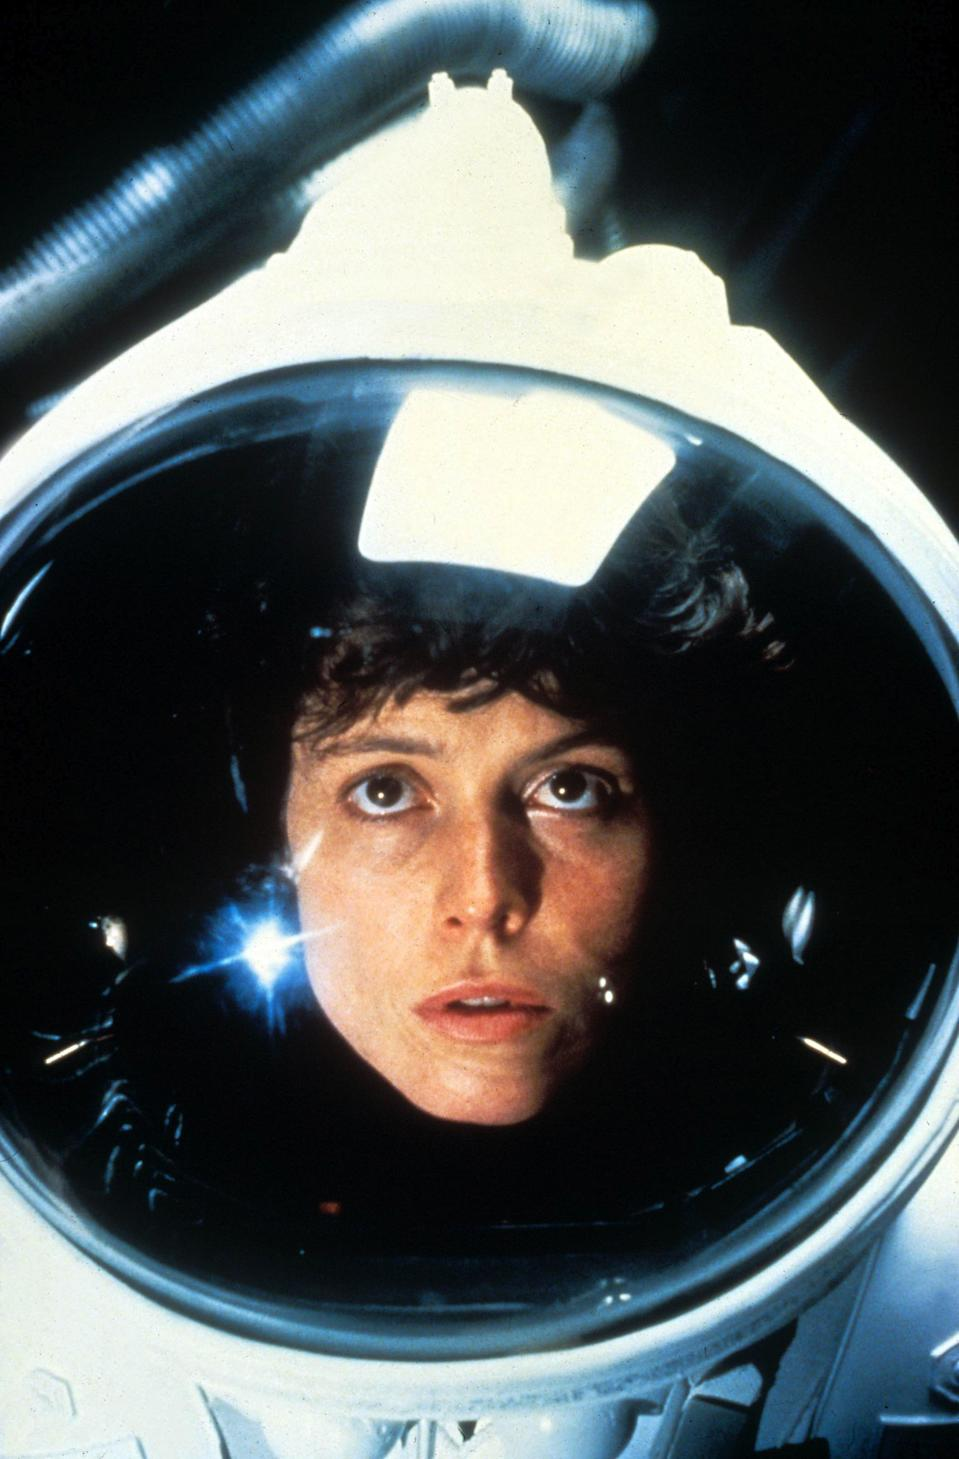 "<p><strong><em>Alien</em></strong>(1979)</p><p>Warrant Officer Ripley (Sigourney Weaver) and her six fellow crew members are unexpectedly woken up from stasis. Unfortunately, a giant bloodthirsty alien has invaded the ship and will pick off anyone too slow or too scared (or just simply in the wrong place). Ripley's the bravest of the bunch.</p><p><strong>Why You Should Watch It:</strong> Watch <em>Alien</em> for Ellen Ripley, one of the most badass women protagonists in movie history. Ellen becomes a hero by rising to meet circumstances. <em>Alien</em> is the first in a line of <a href=""https://www.refinery29.com/2018/03/192881/black-women-sci-fi-shows-movies-diversity"" rel=""nofollow noopener"" target=""_blank"" data-ylk=""slk:stellar sci-fi movies helmed by women"" class=""link rapid-noclick-resp"">stellar sci-fi movies helmed by women</a> ( <em>Ex Machina</em> and <em><a href=""https://www.refinery29.com/2018/02/191499/annihilation-review-natalie-portman-movie"" rel=""nofollow noopener"" target=""_blank"" data-ylk=""slk:Annihilation"" class=""link rapid-noclick-resp"">Annihilation</a></em> being some of the most recent).</p><span class=""copyright"">20th Century Fox/Kobal/REX/Shutterstock</span>"